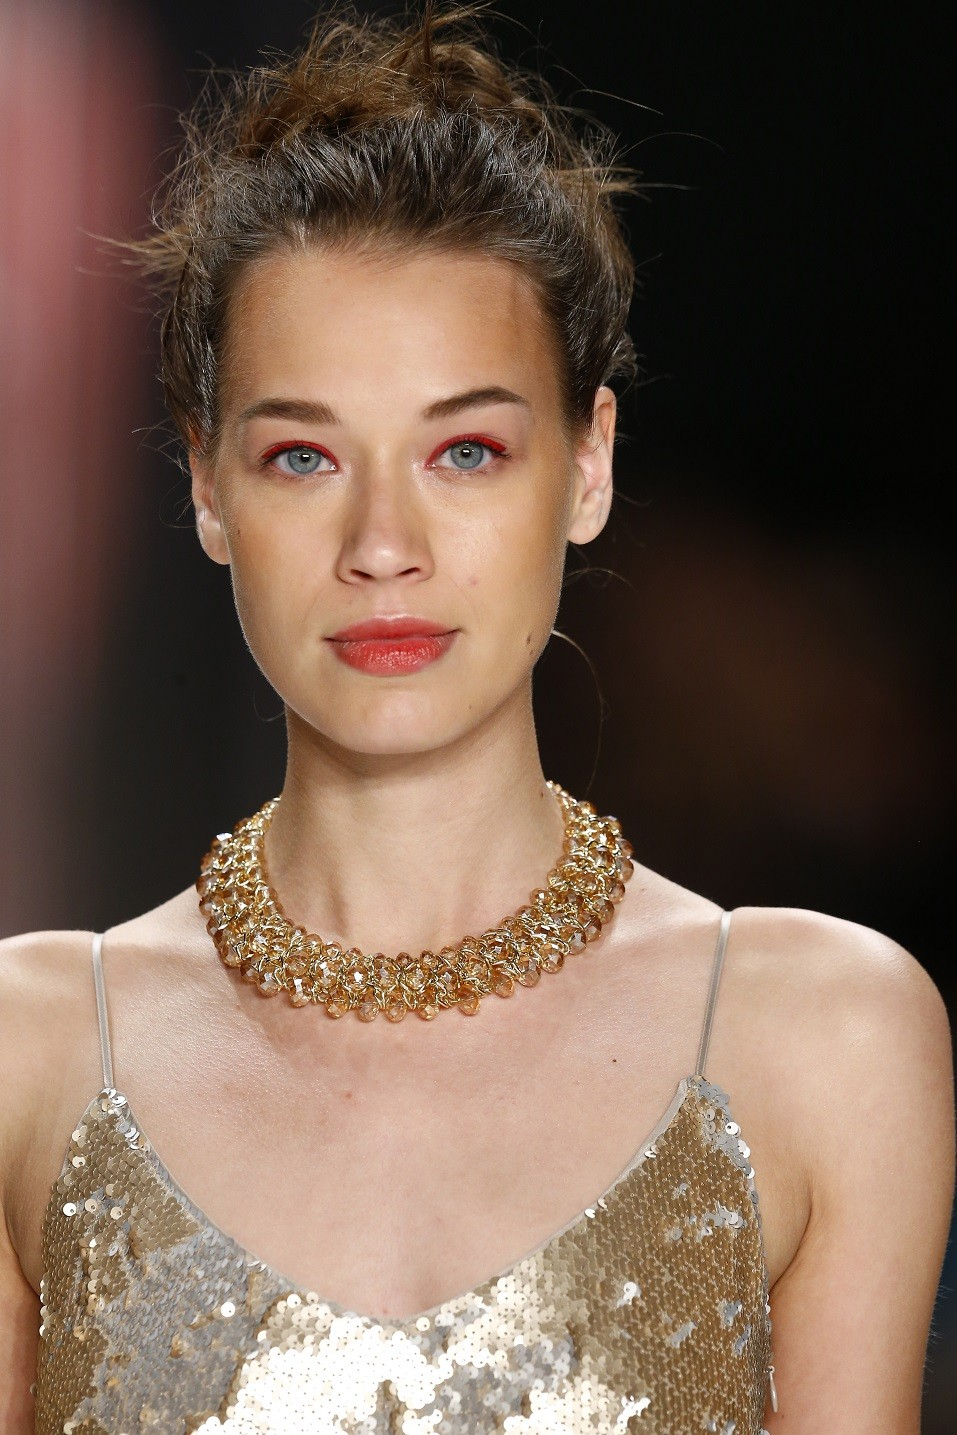 A model walks the runway at the Minx by Eva Lutz show